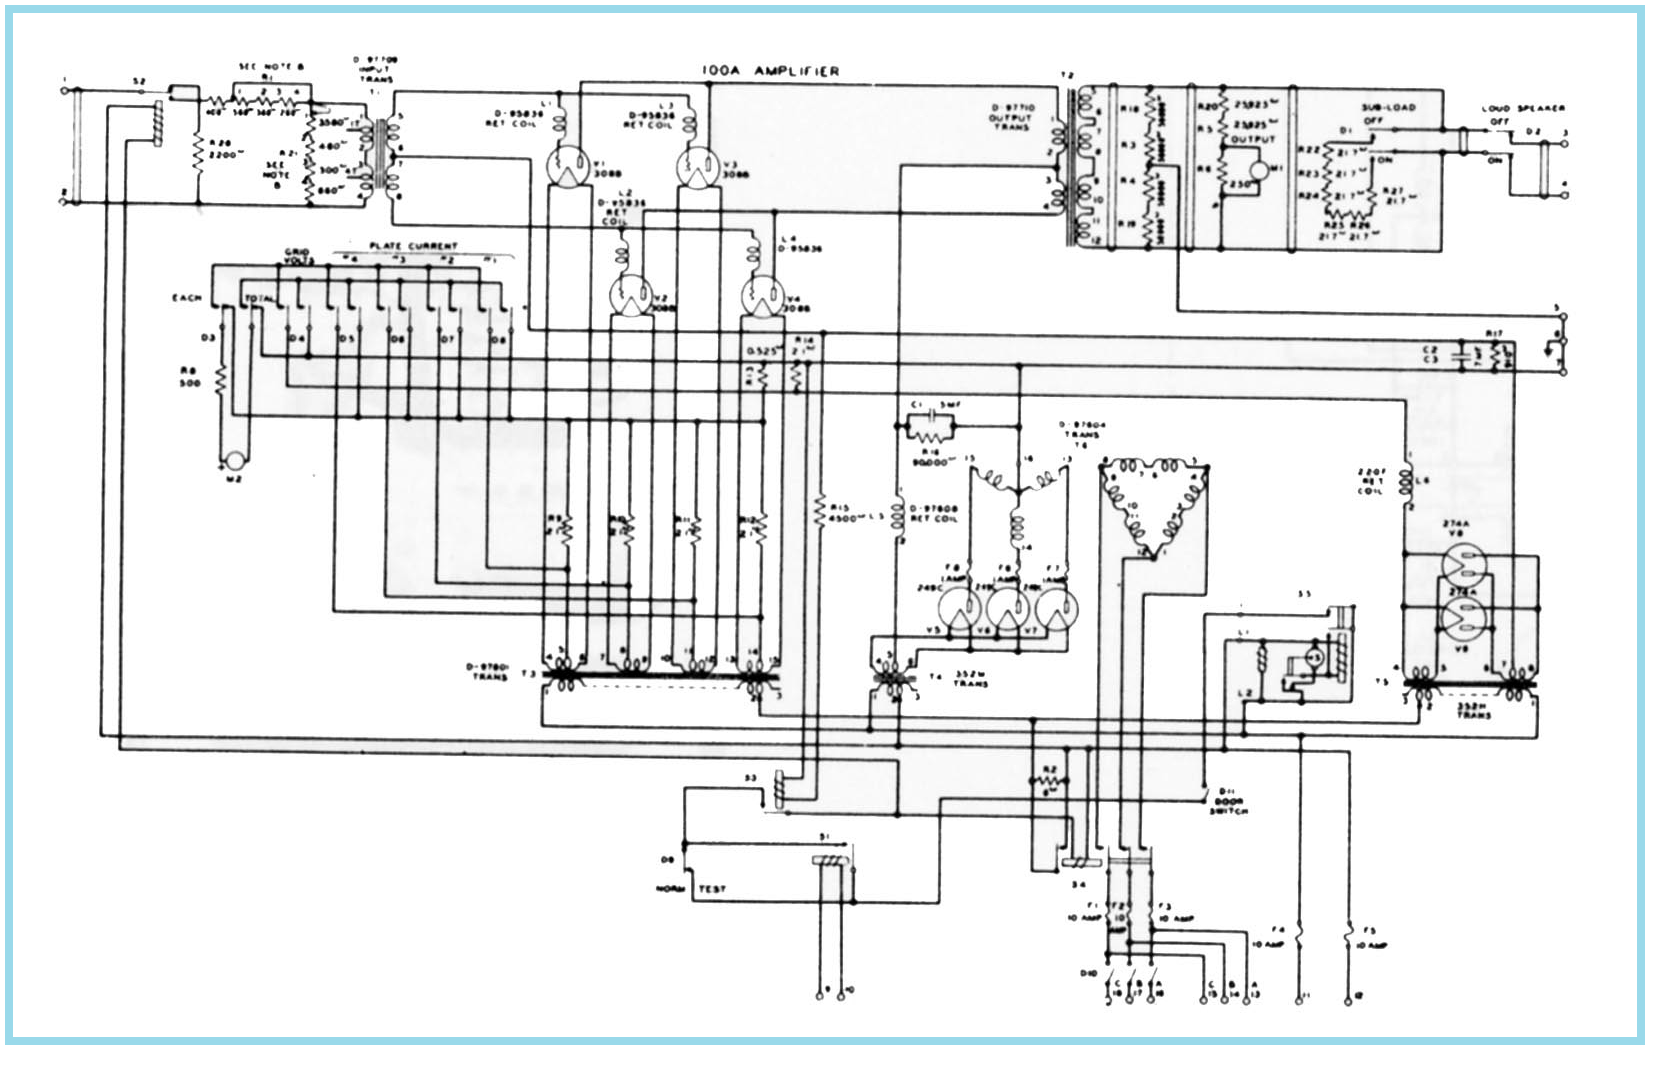 100 Amplifiers Part 1 1916 45 Lilienthal Engineering Vacuum Tube Tesla Coil Circuit Diagram Free Download Wiring Western Electric A B Original Schematic Drlig Kopi